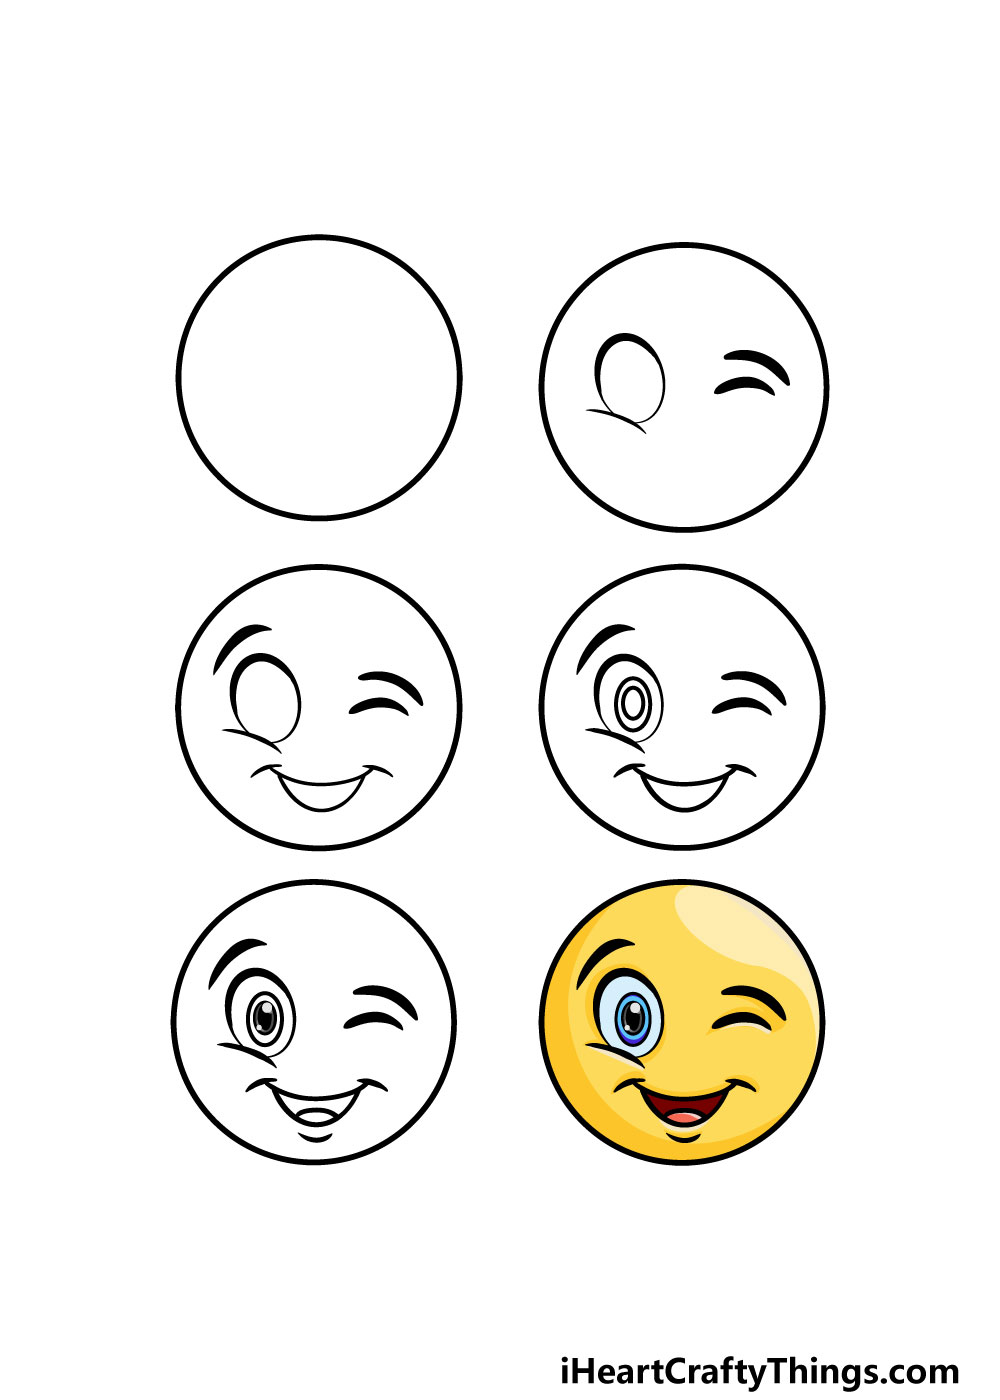 how to draw a winky face in 6 steps